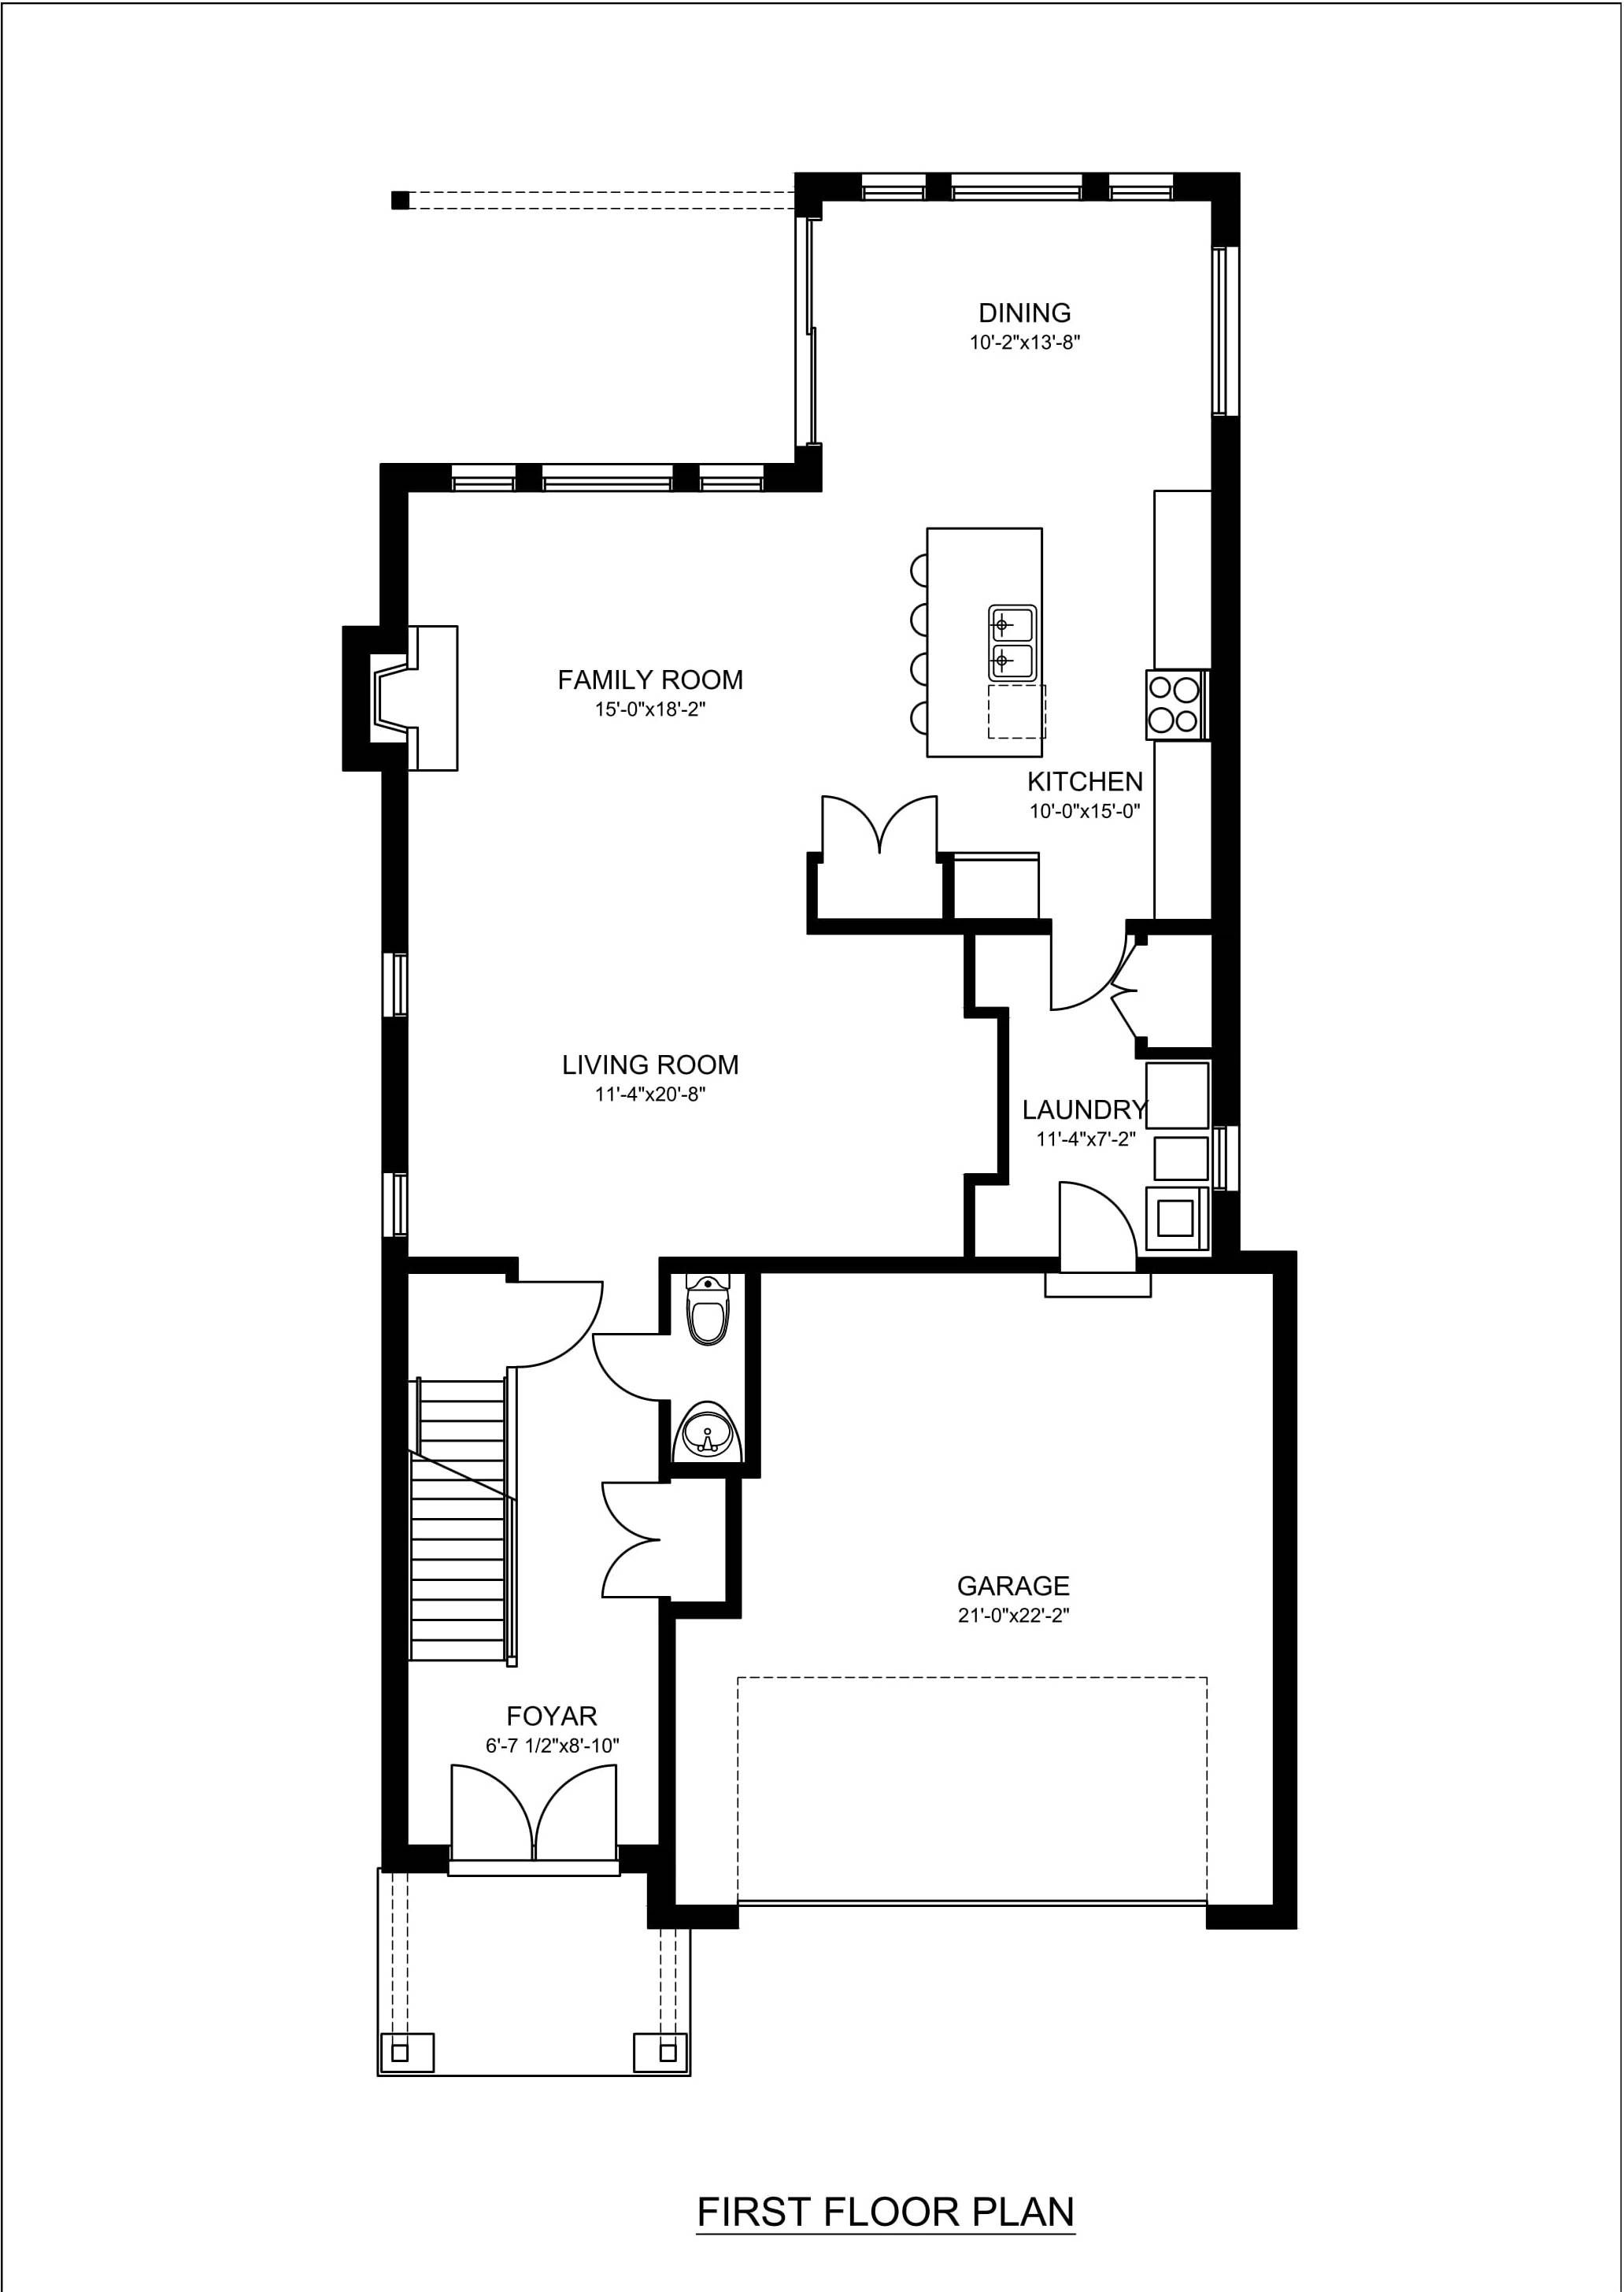 2d Floor Plan Design Rendering Sles Exles Home Design Floor Plans Living Room Floor Plans Bedroom Layout Design